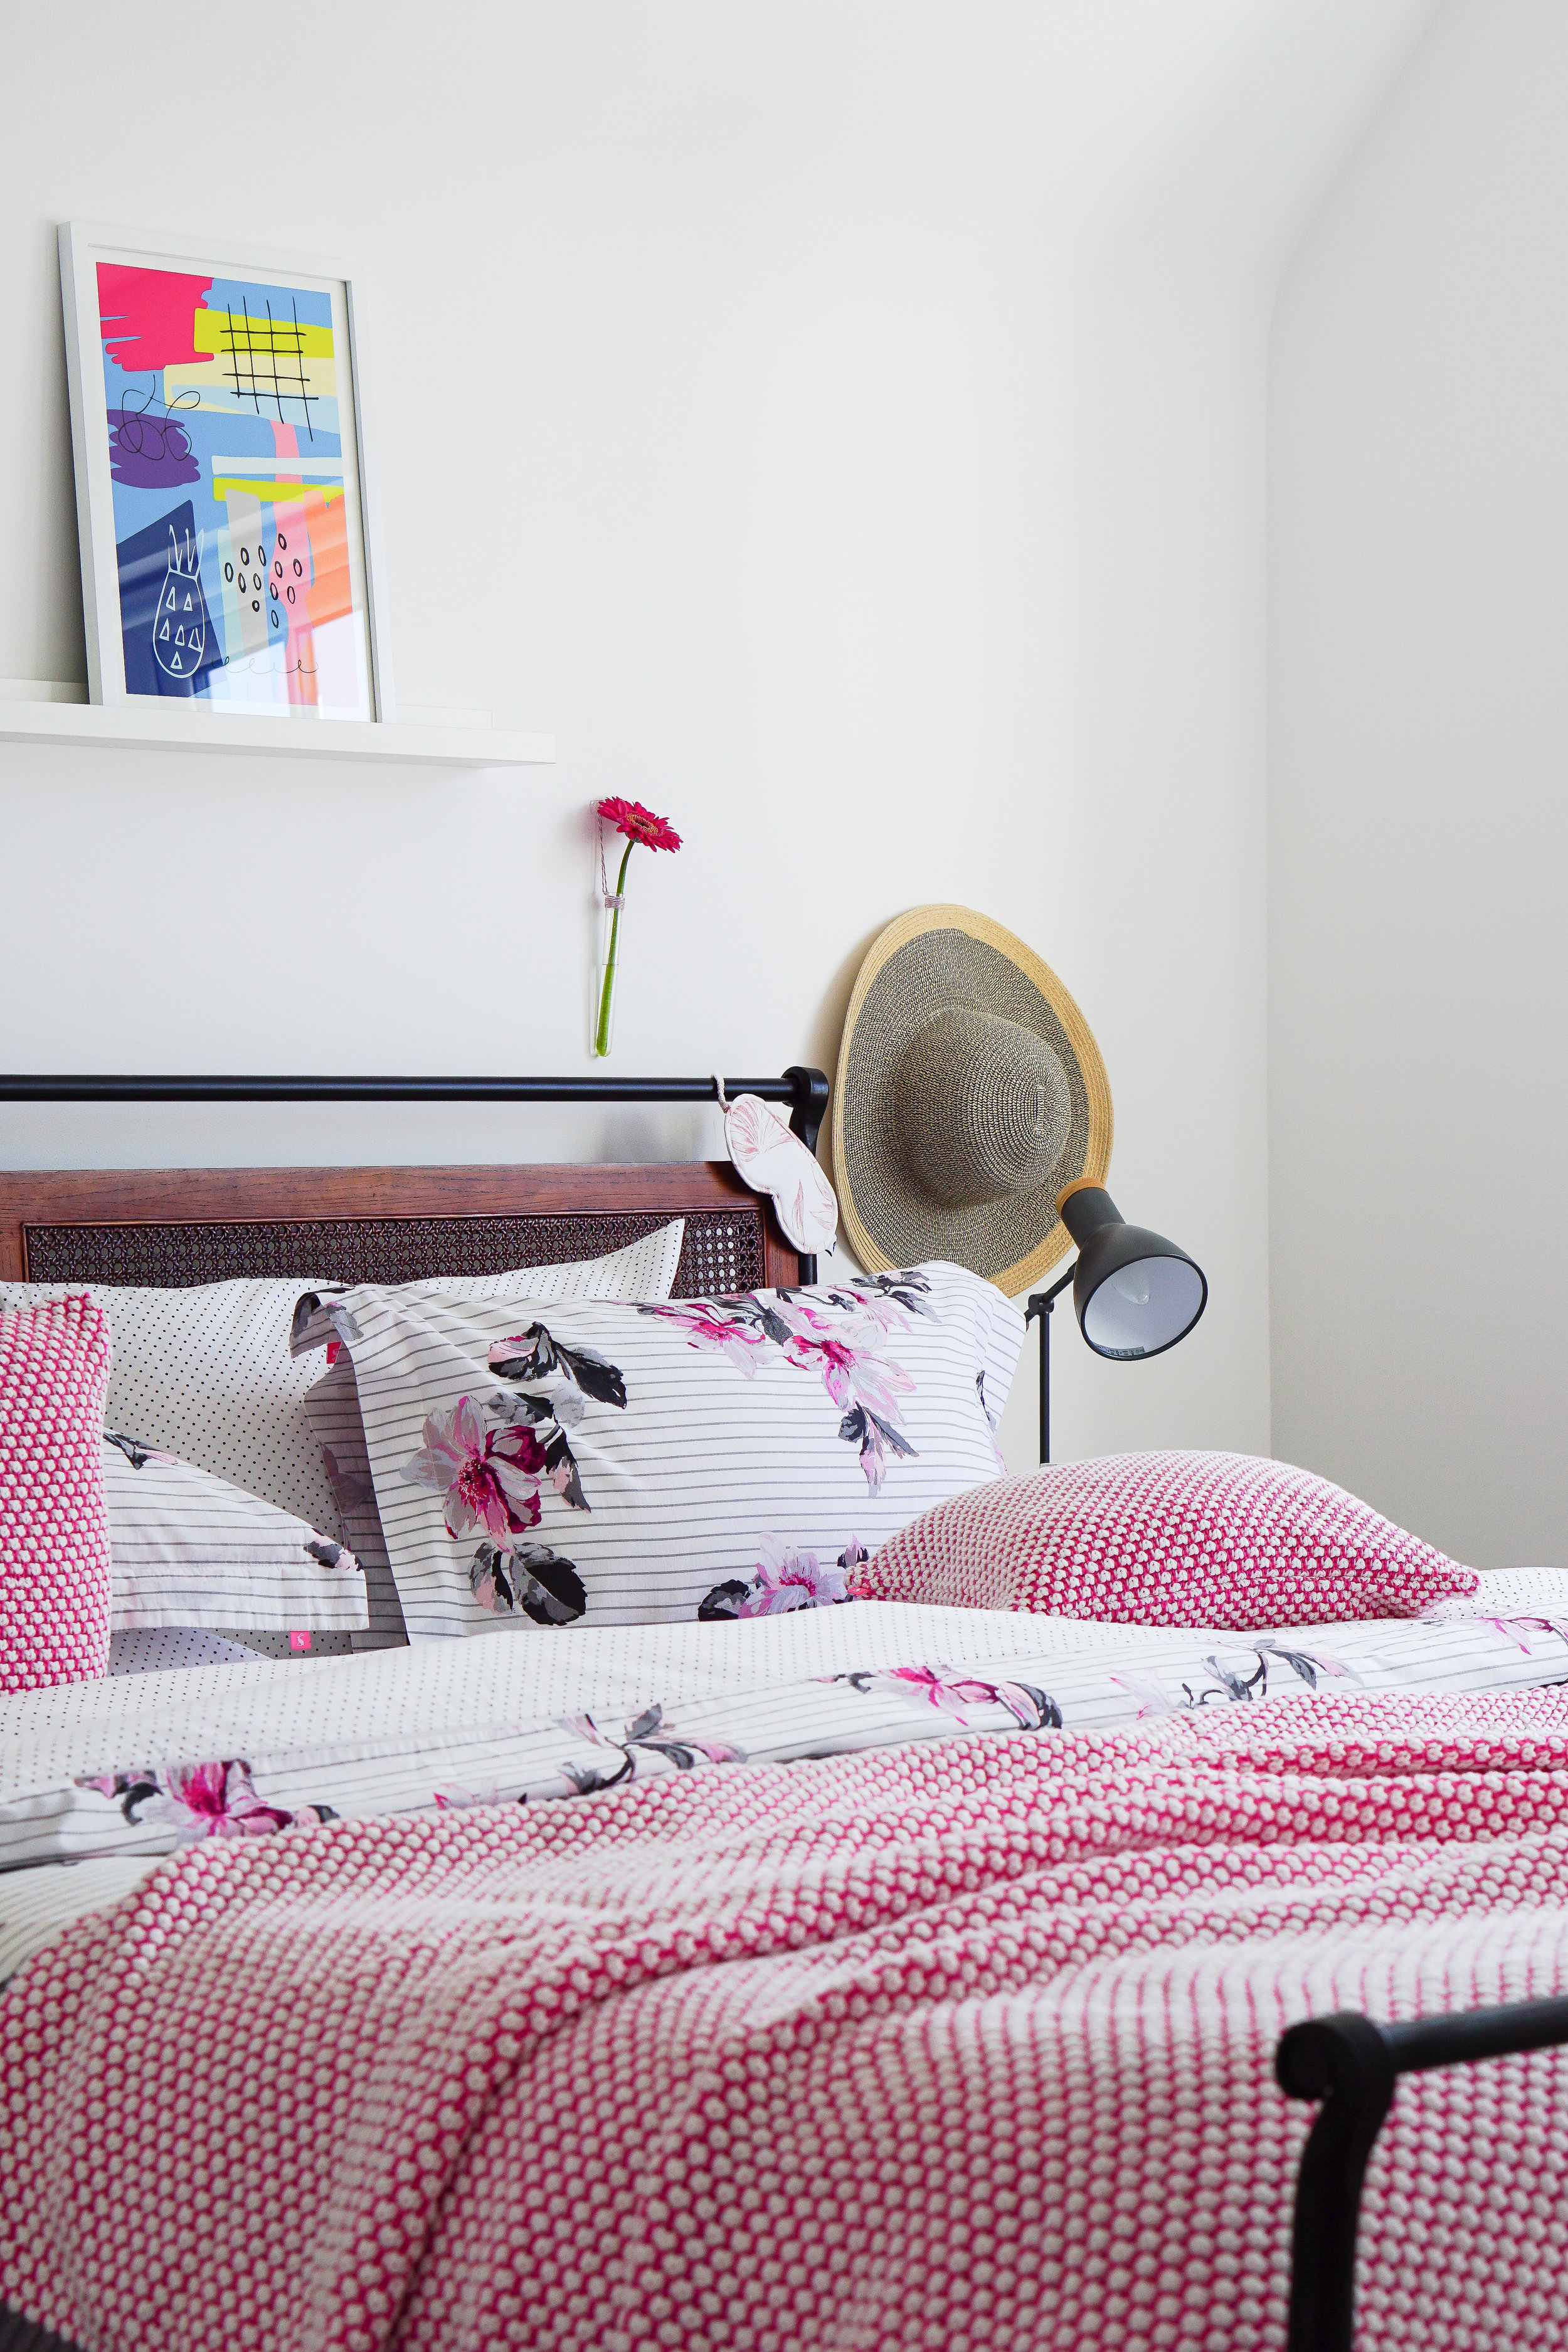 Make the most of the summer months with a pretty bedroom refresh